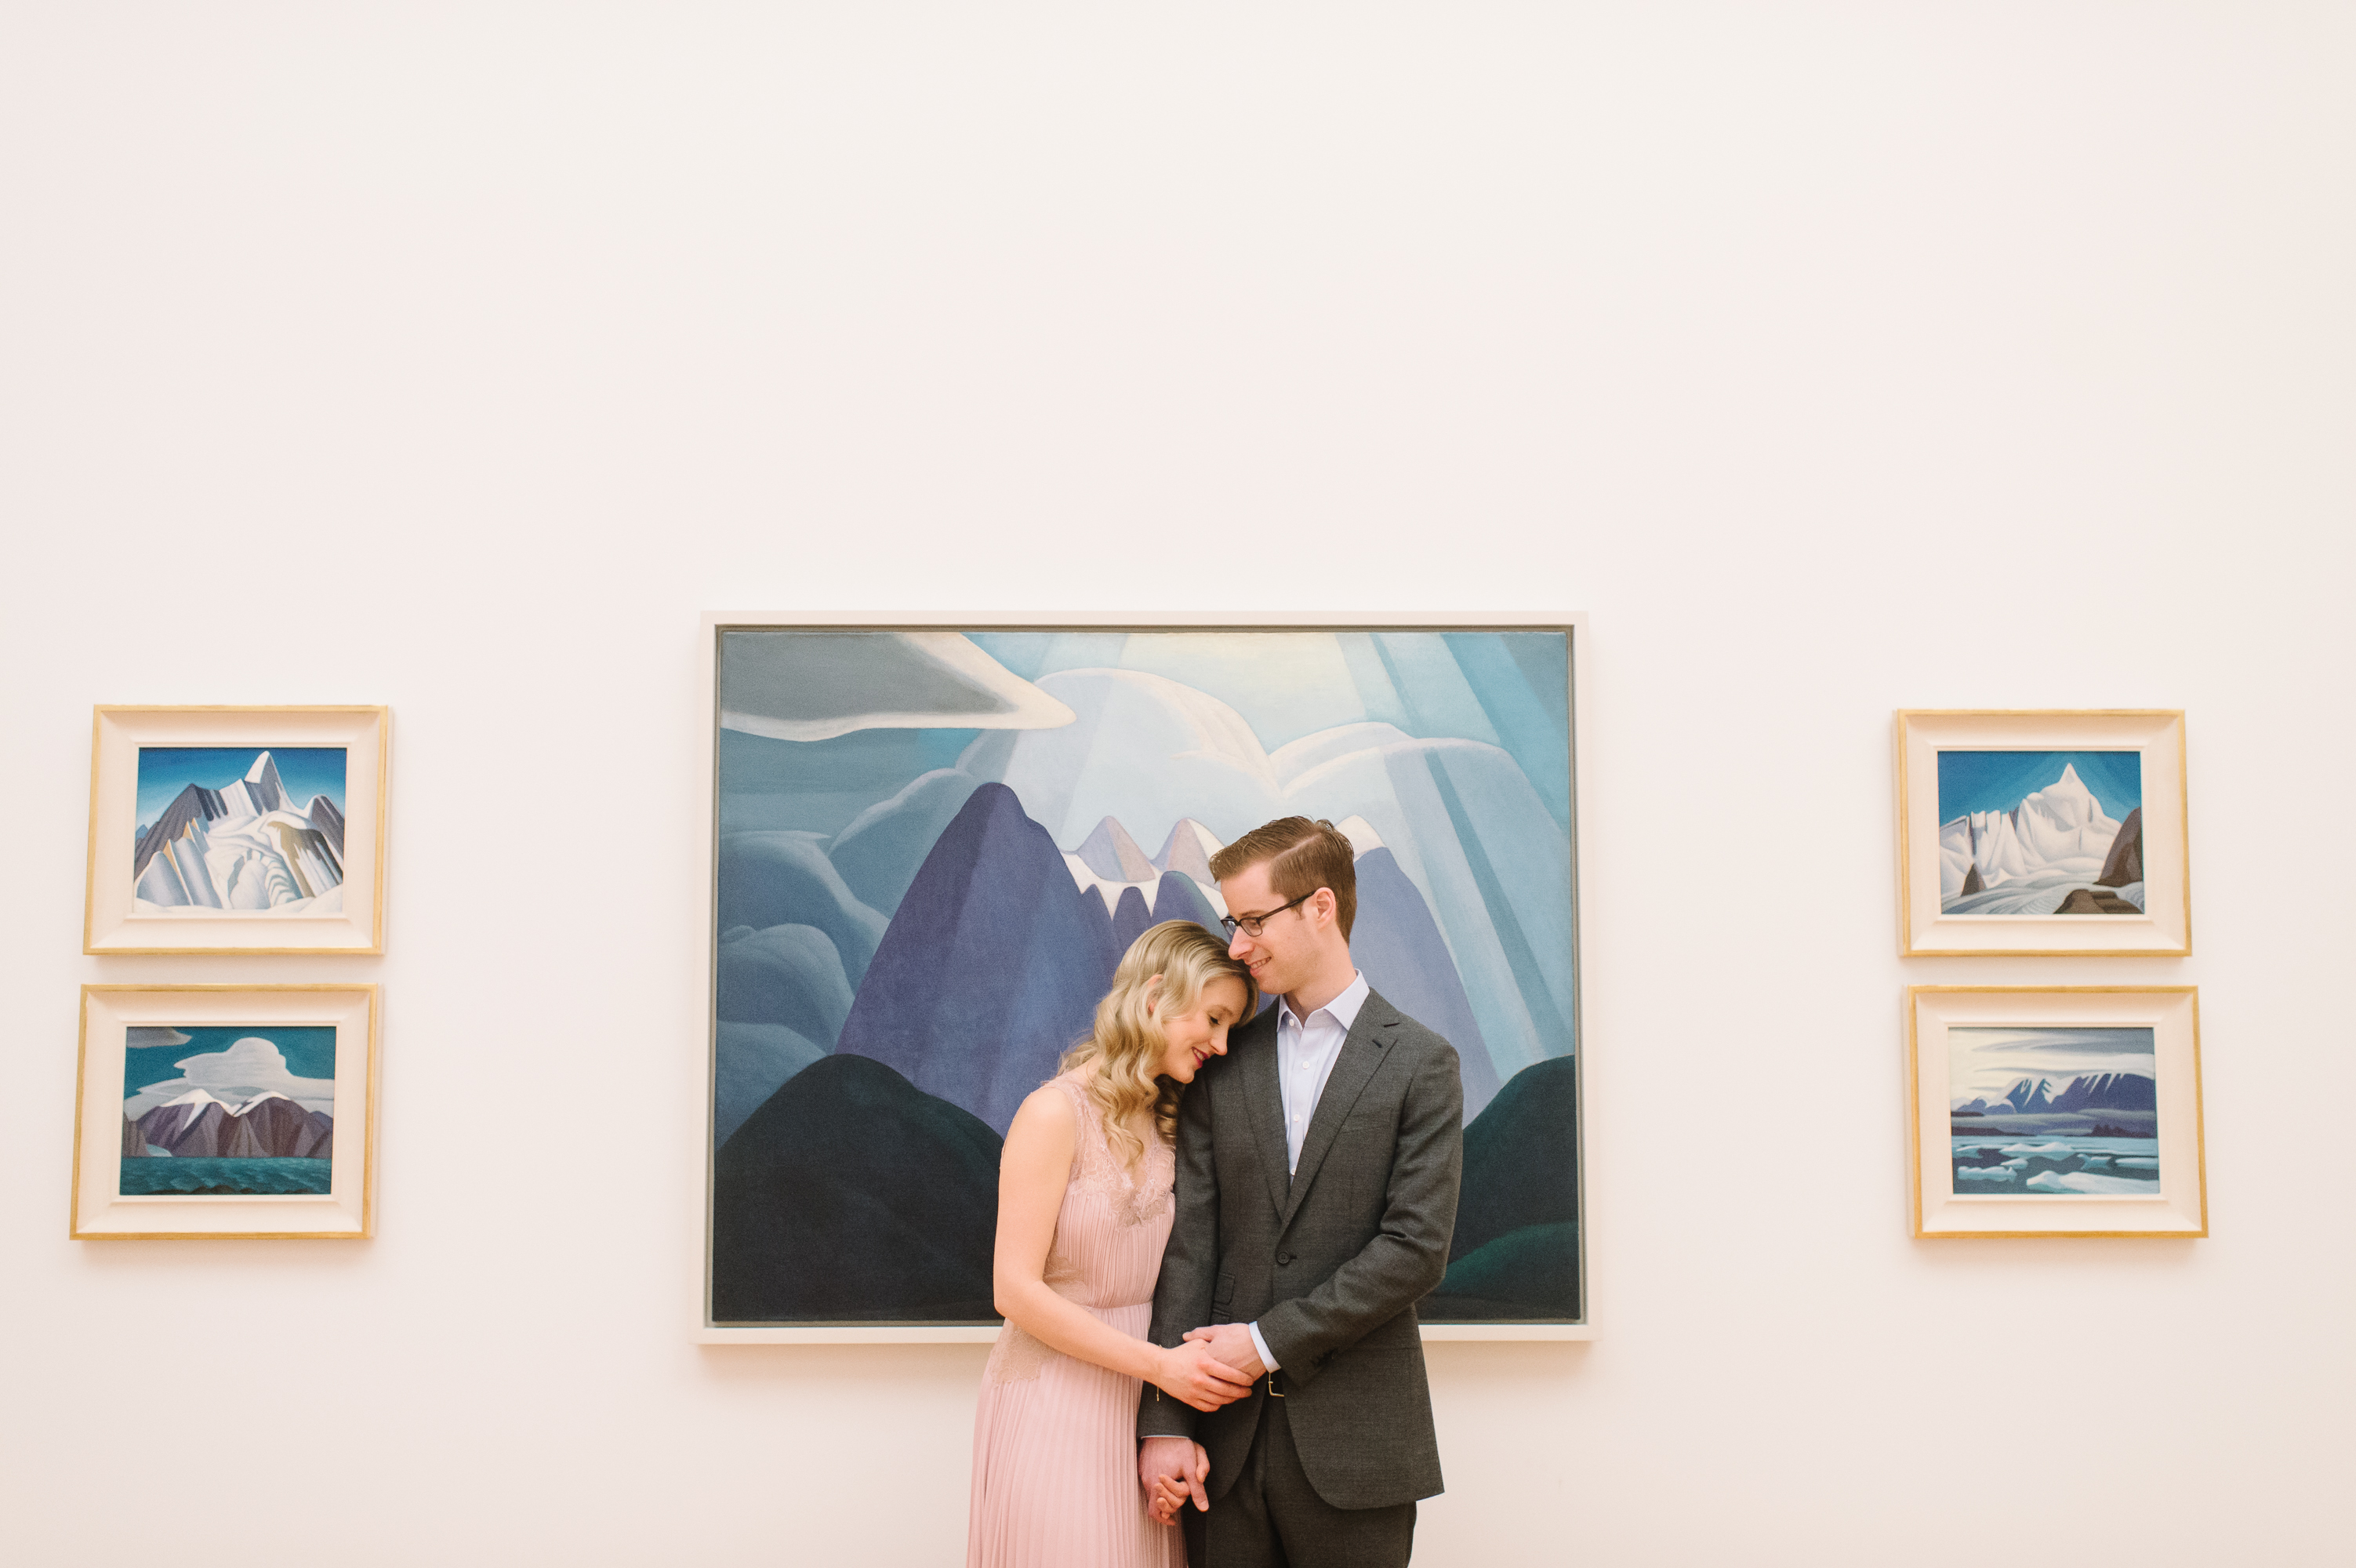 tara-mcmullen-photography-toronto-wedding-photographer-AGO-engagement-session-art-gallery-of-ontario-engagement-session-006